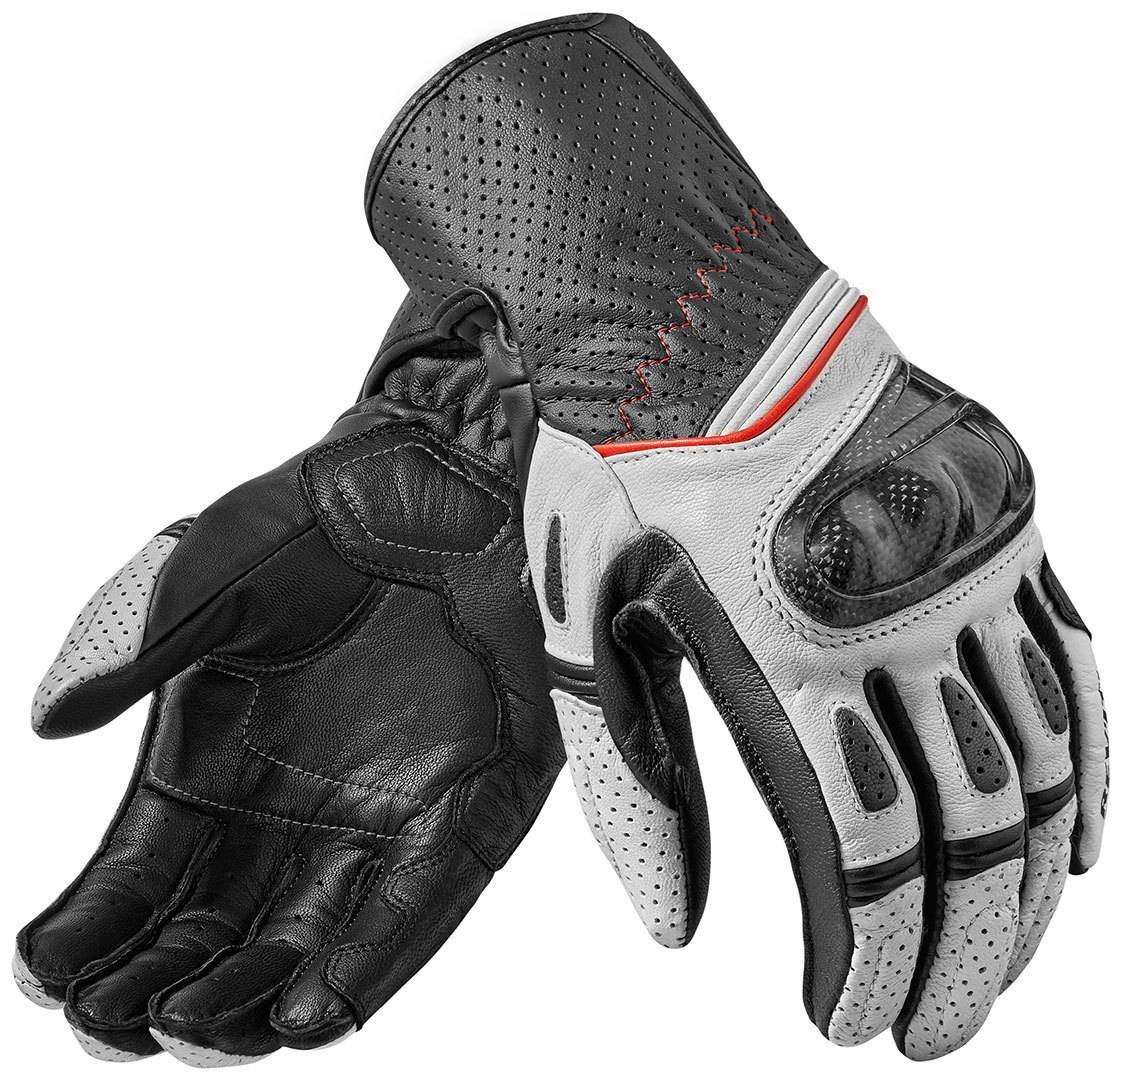 Revit Chevron 2 Guantes Blanco/Negro 3XL